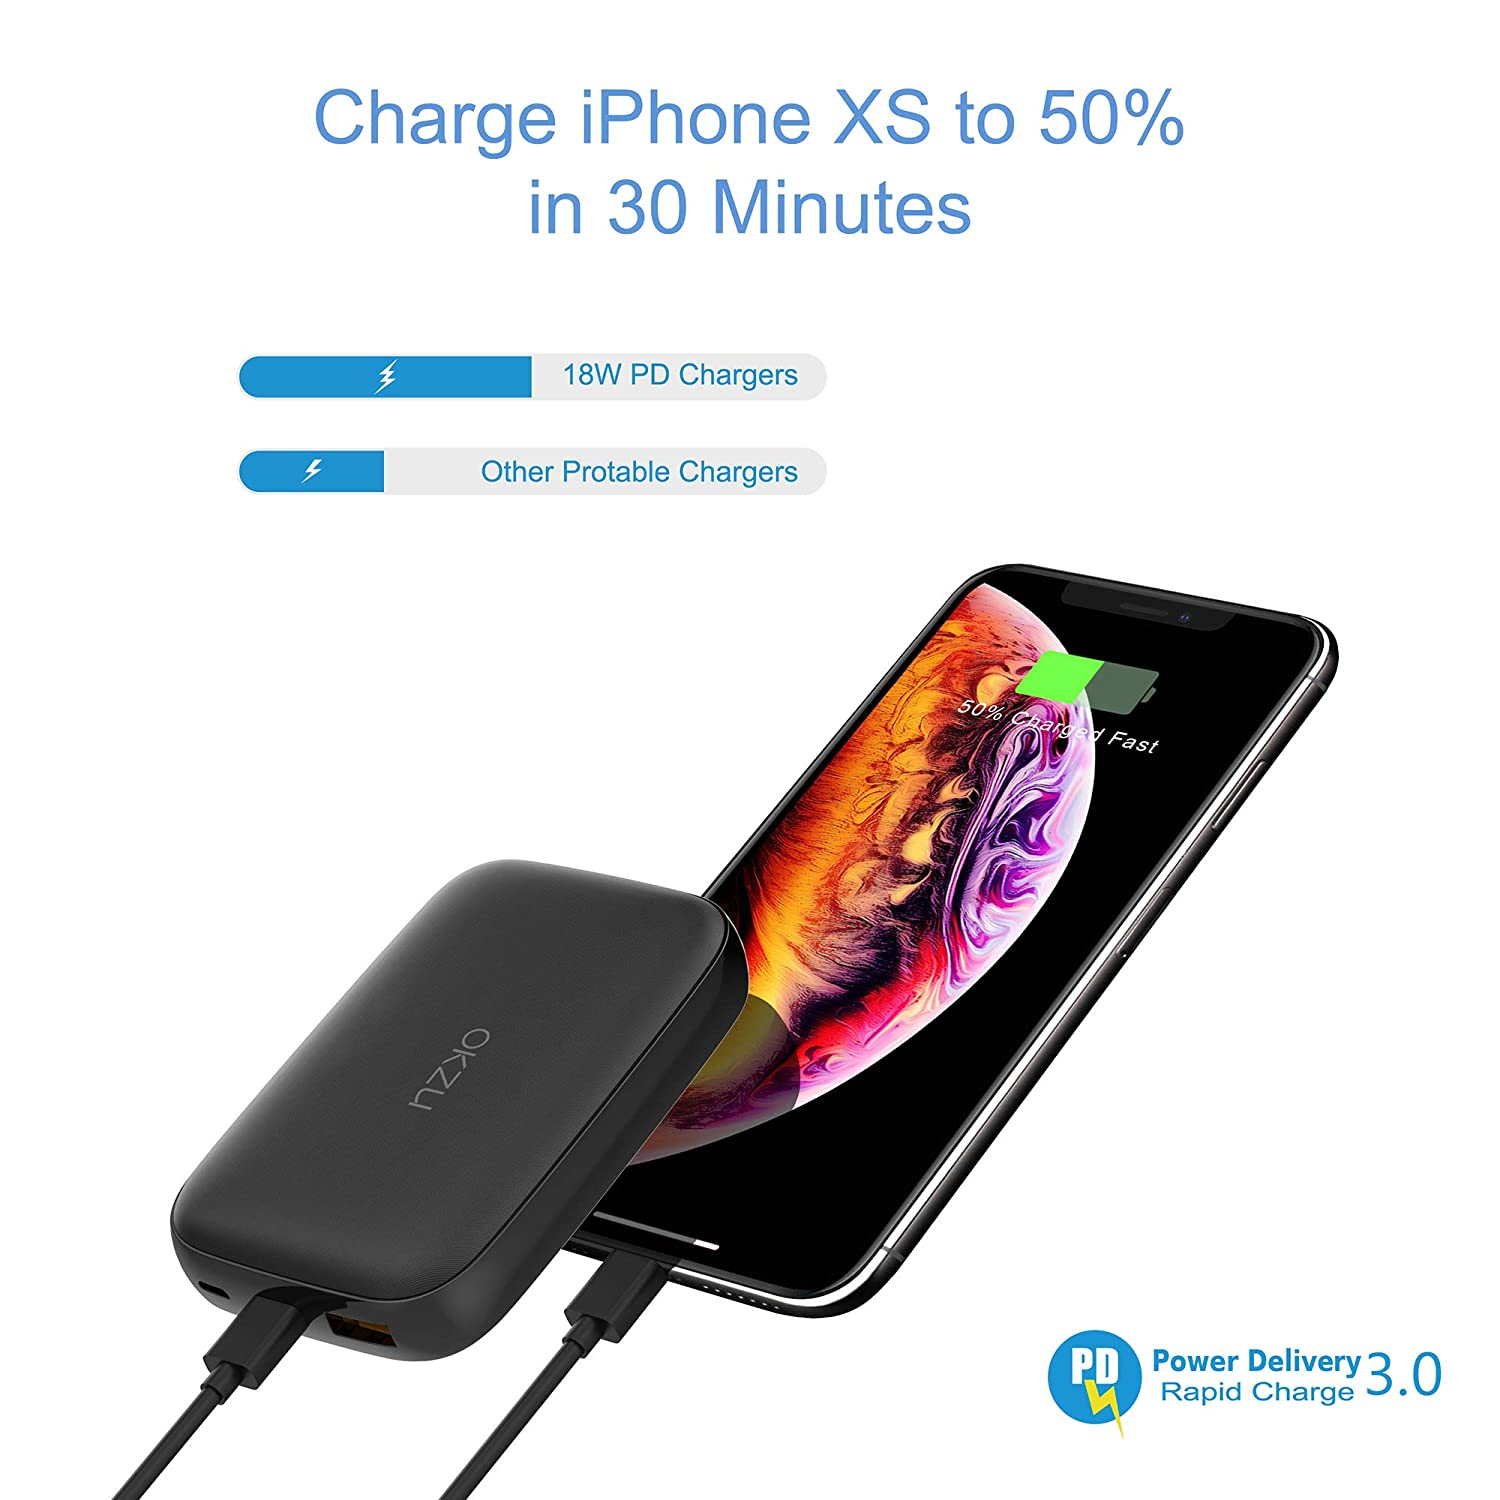 Tablets Samsung Google Pixel 18W PD Portable External Battery Pack for iPhone QC 3.0 Power Delivery Portable Charger OKZU 10000mAh USB C Power Bank Huawei iPad